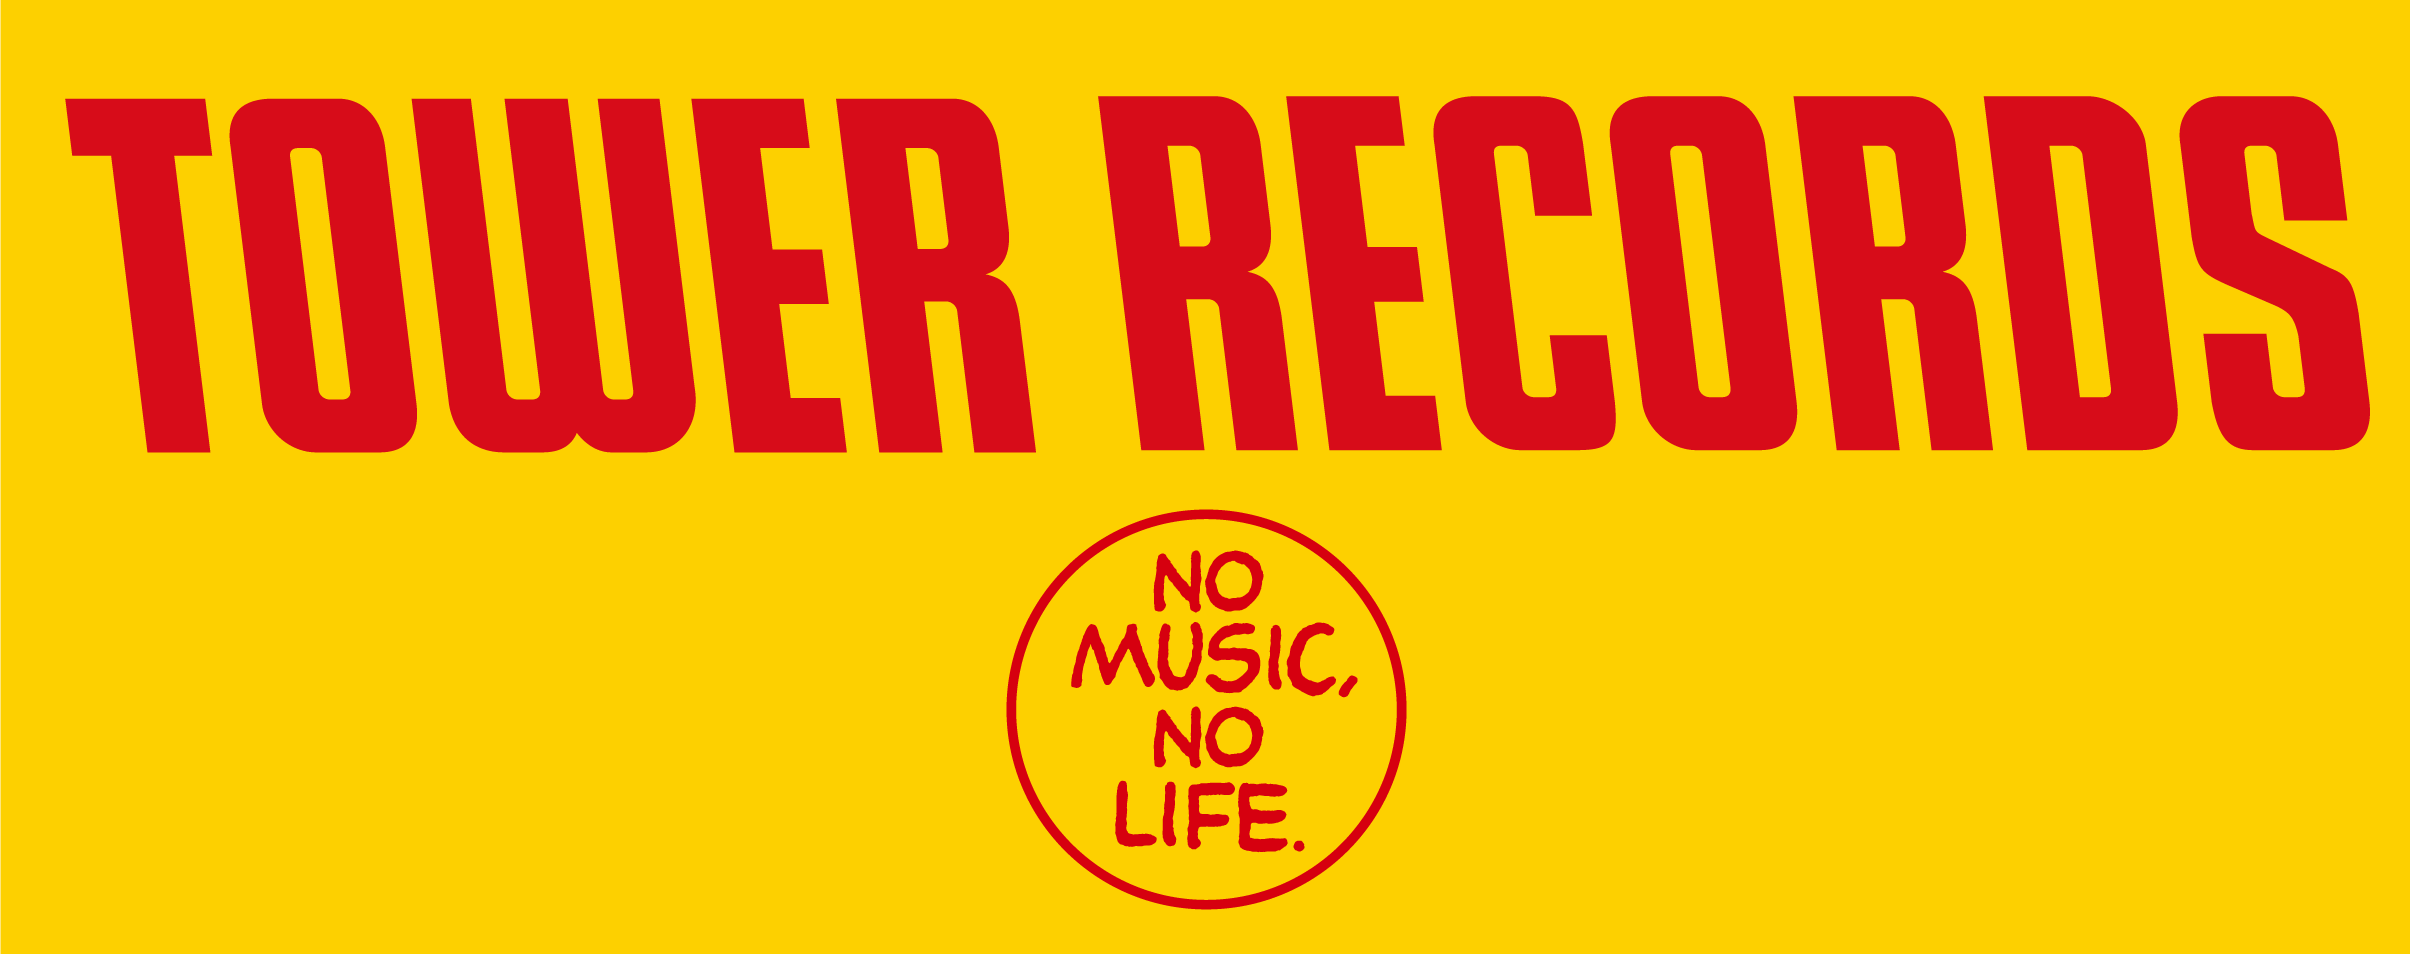 Tower Records unveils their Yearly Bestseller Lists for 2015